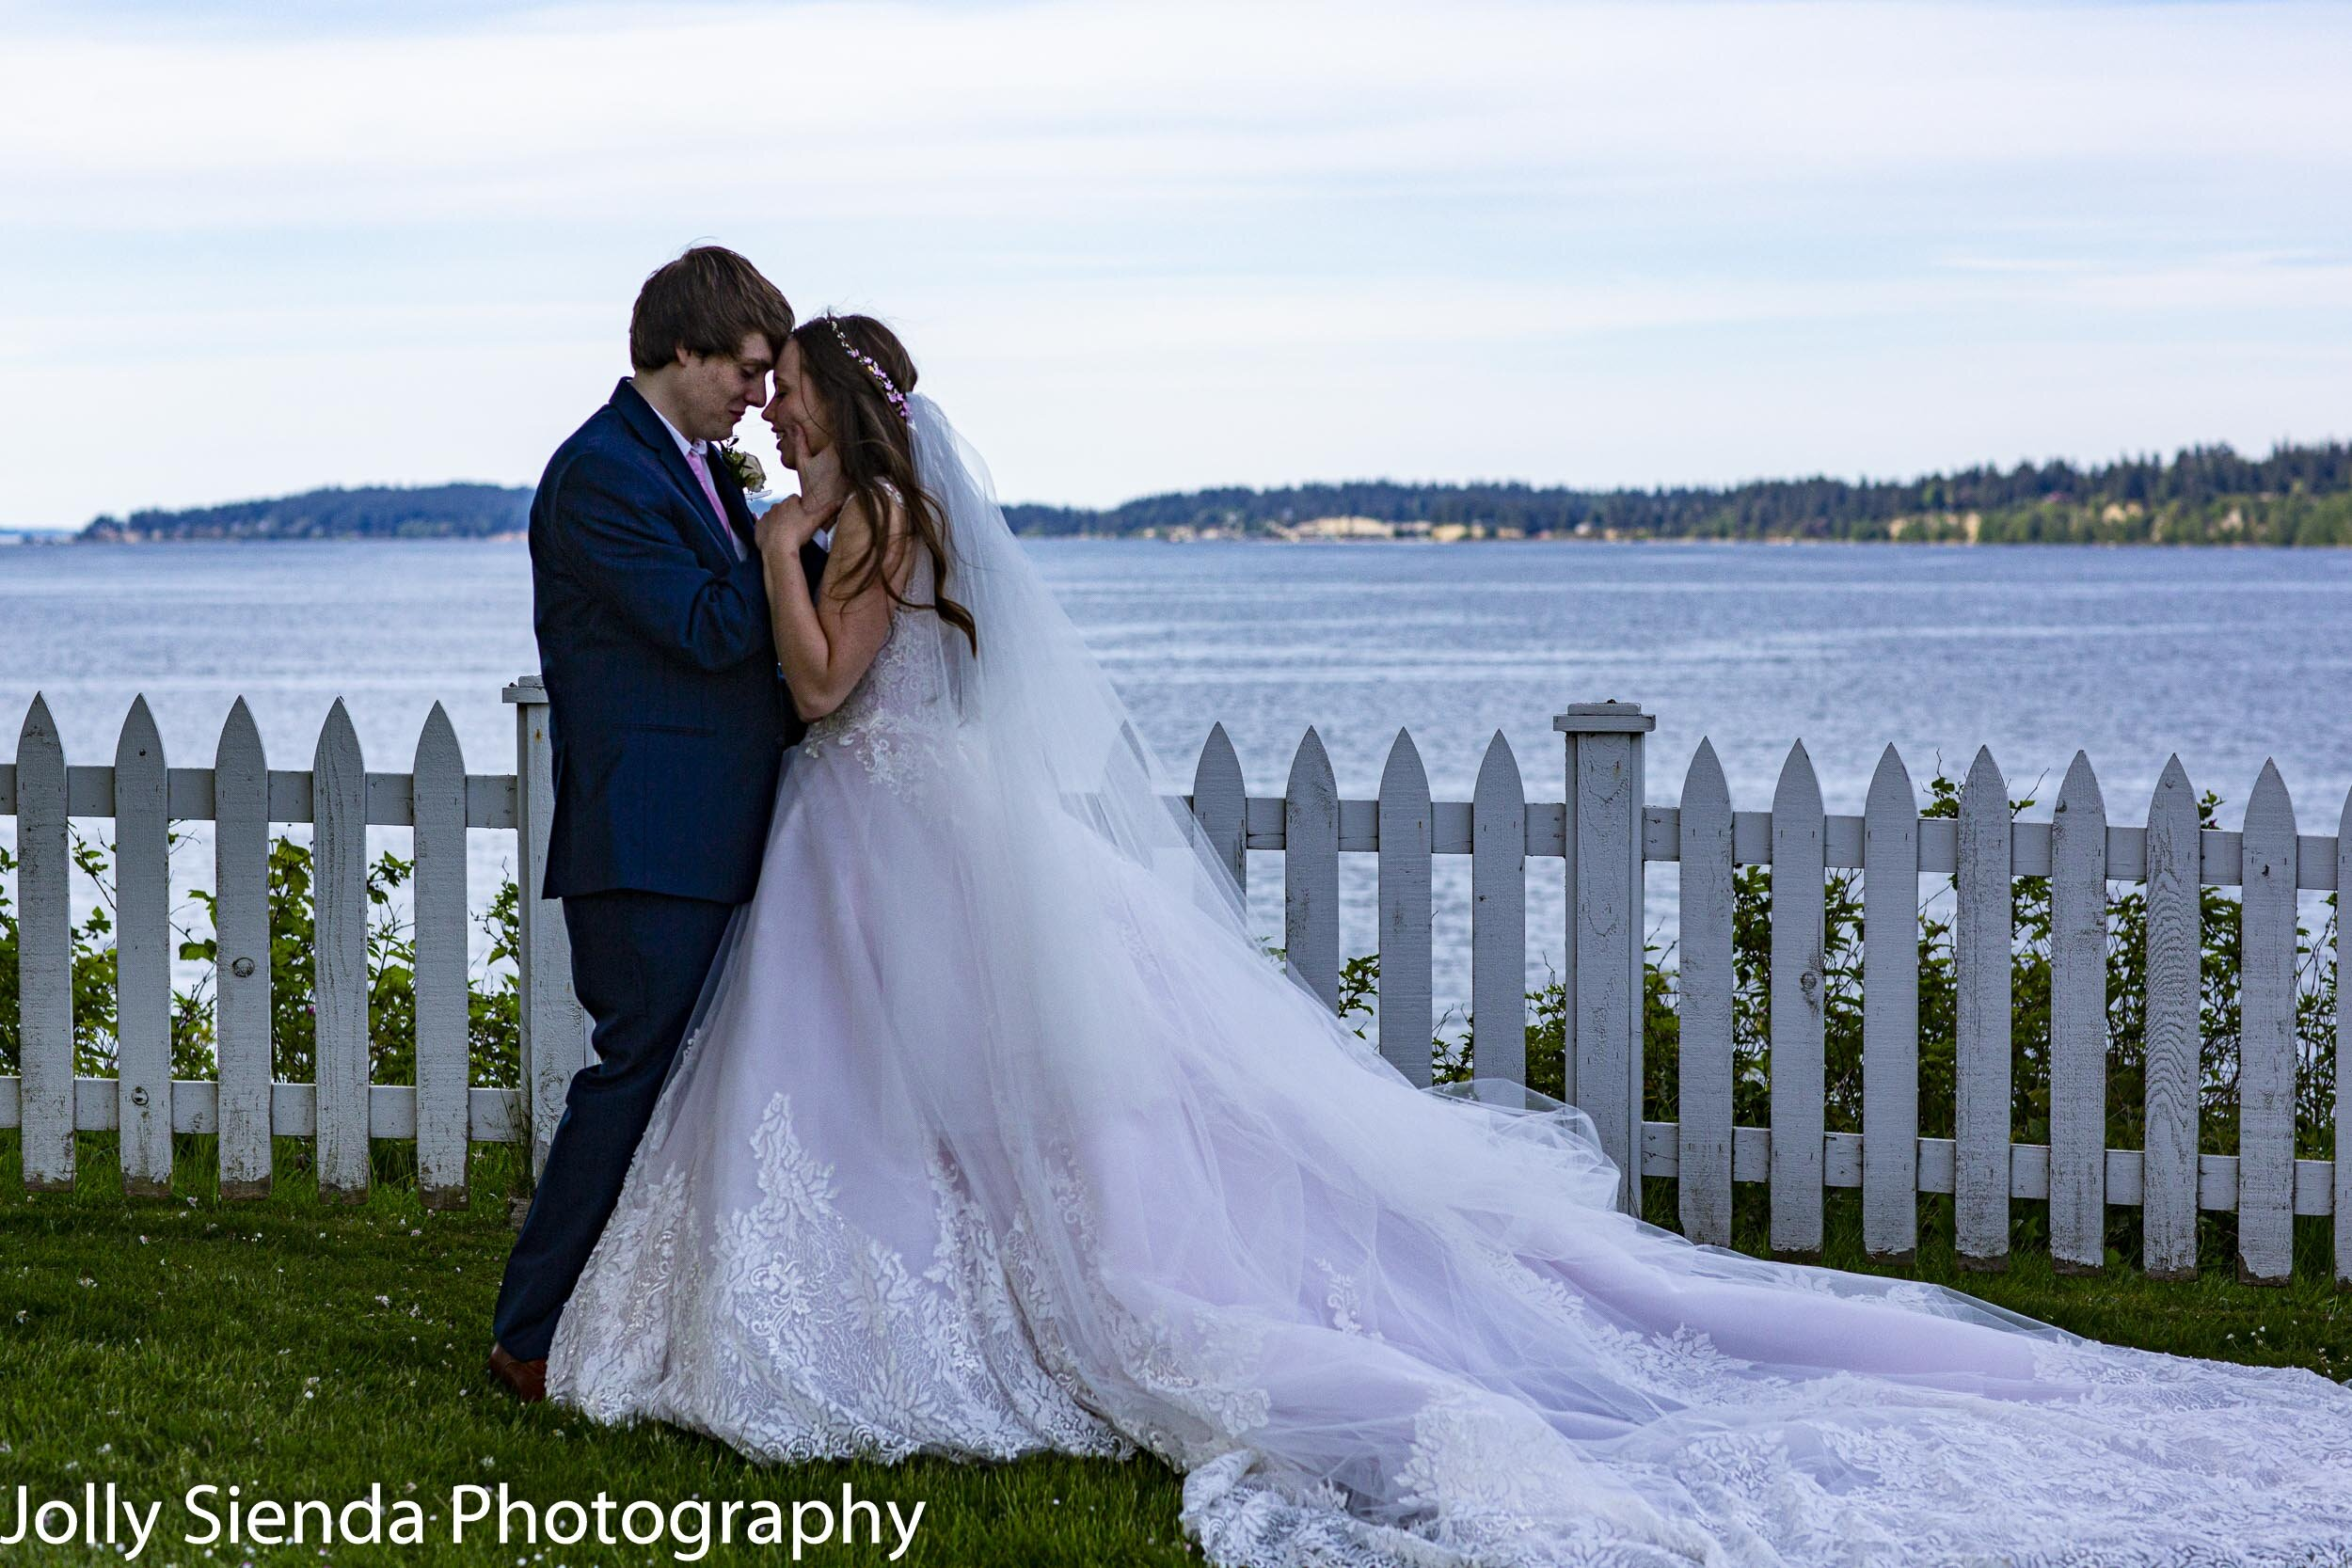 Wedding Photography at Port Gamble by Jolly Sienda Photography